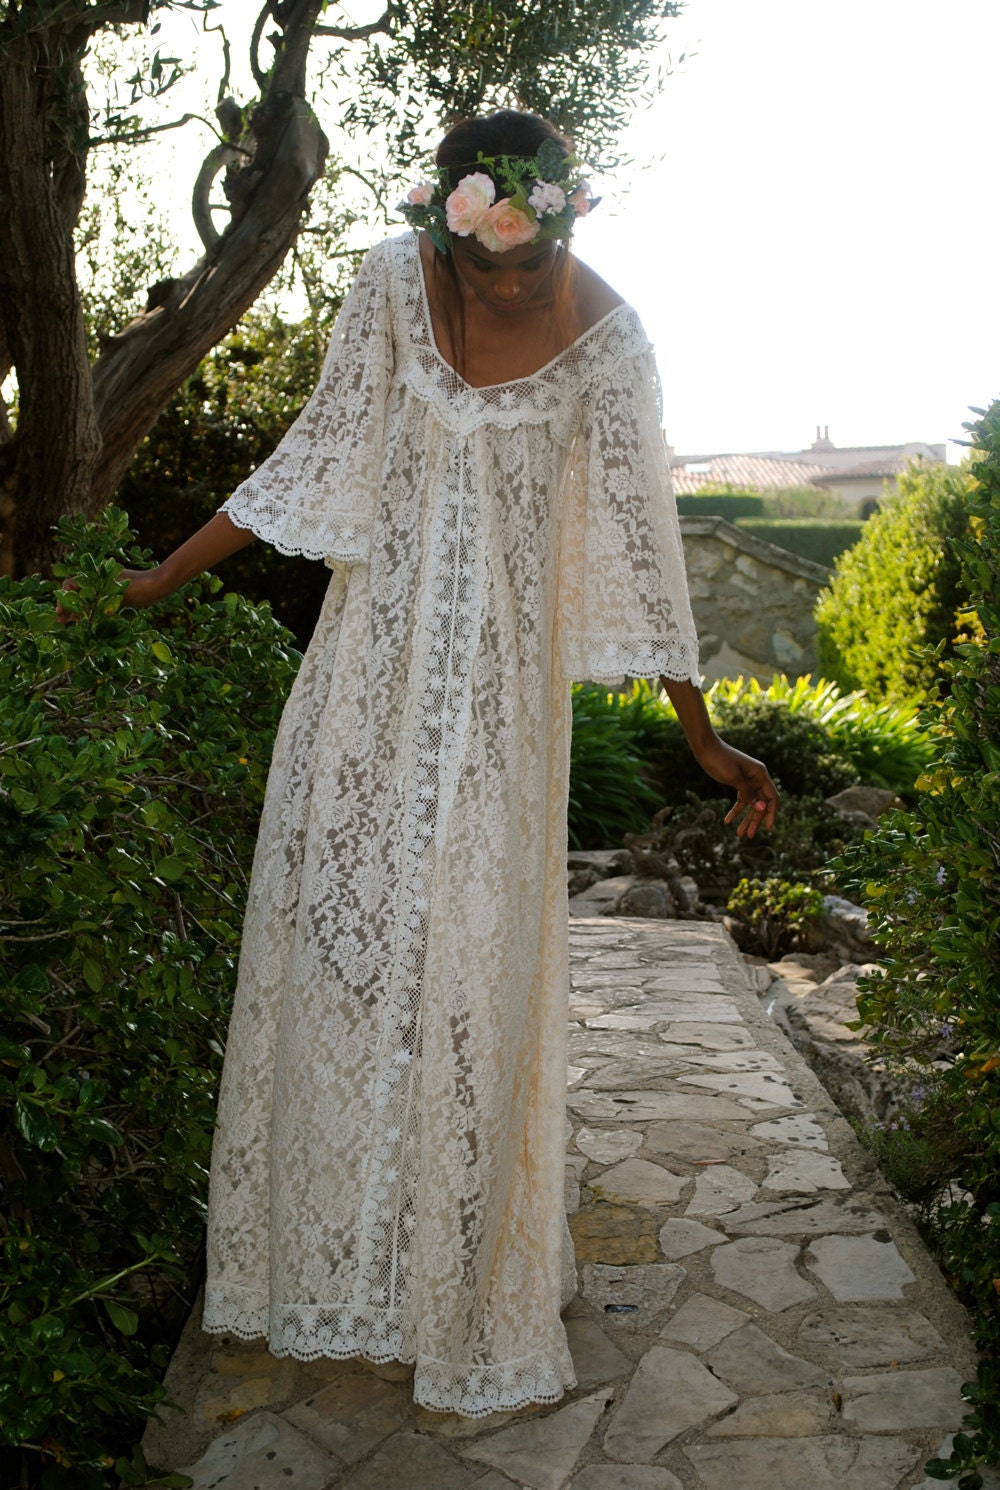 Lacy Clothing For Women Boho Hippie Bohemian Wedding Dress